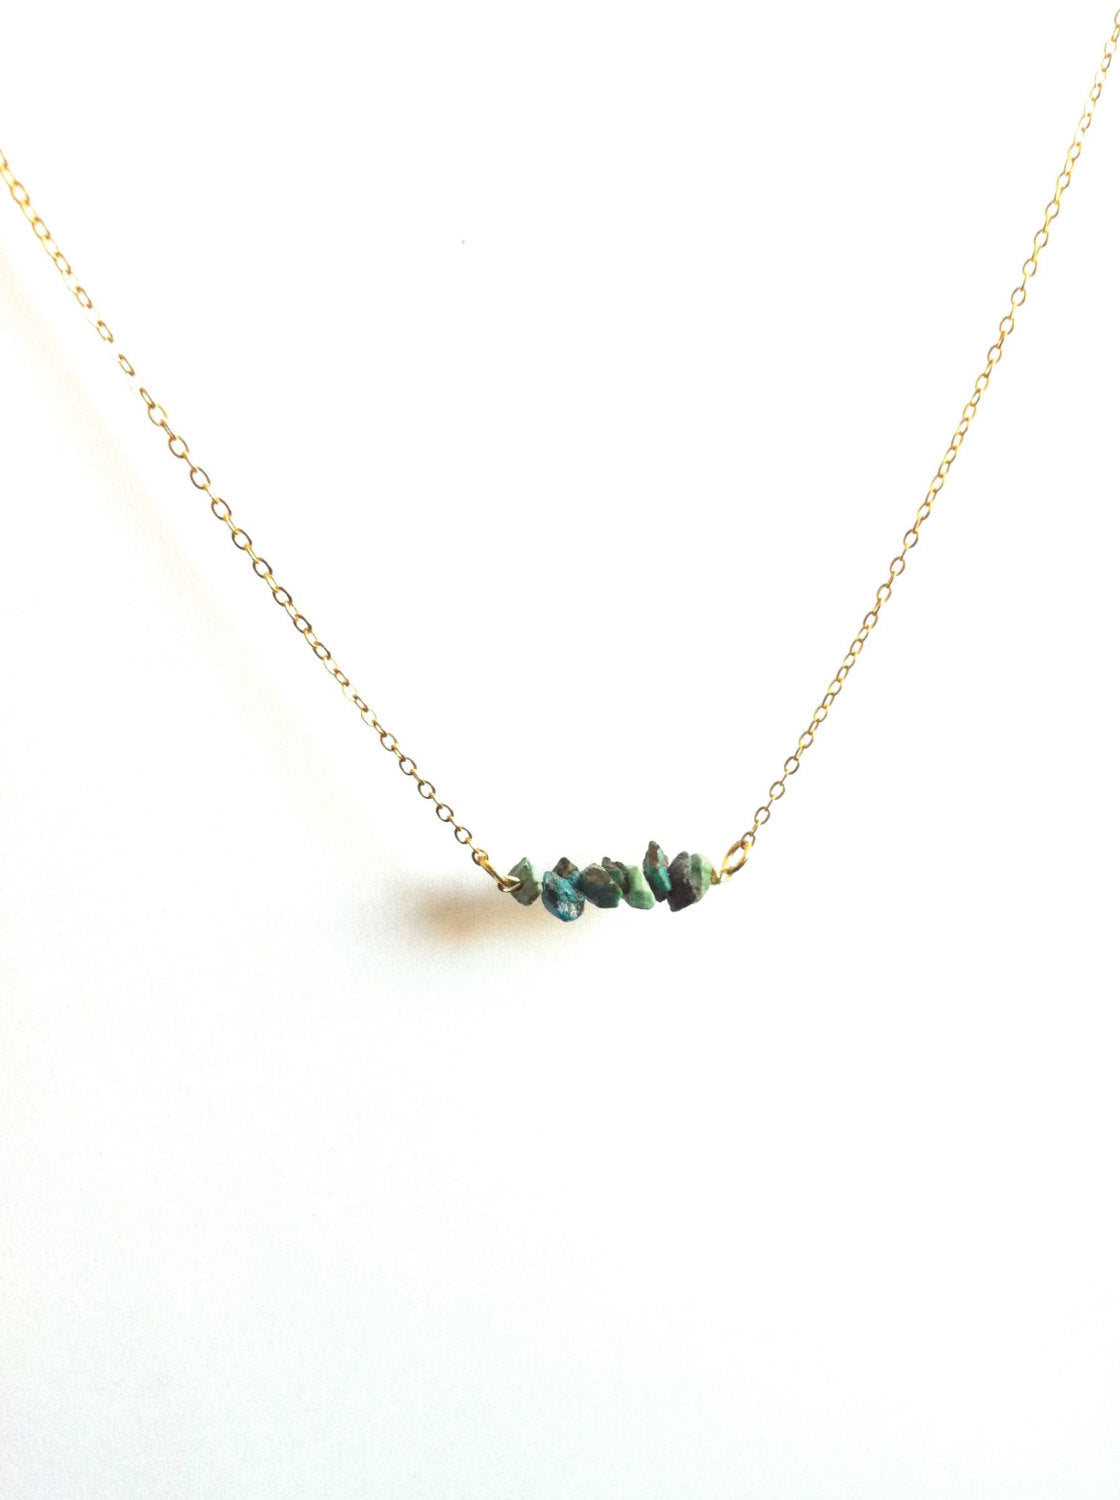 Tiny Raw Turquoise Gemstone Bar Necklace | IB Jewelry